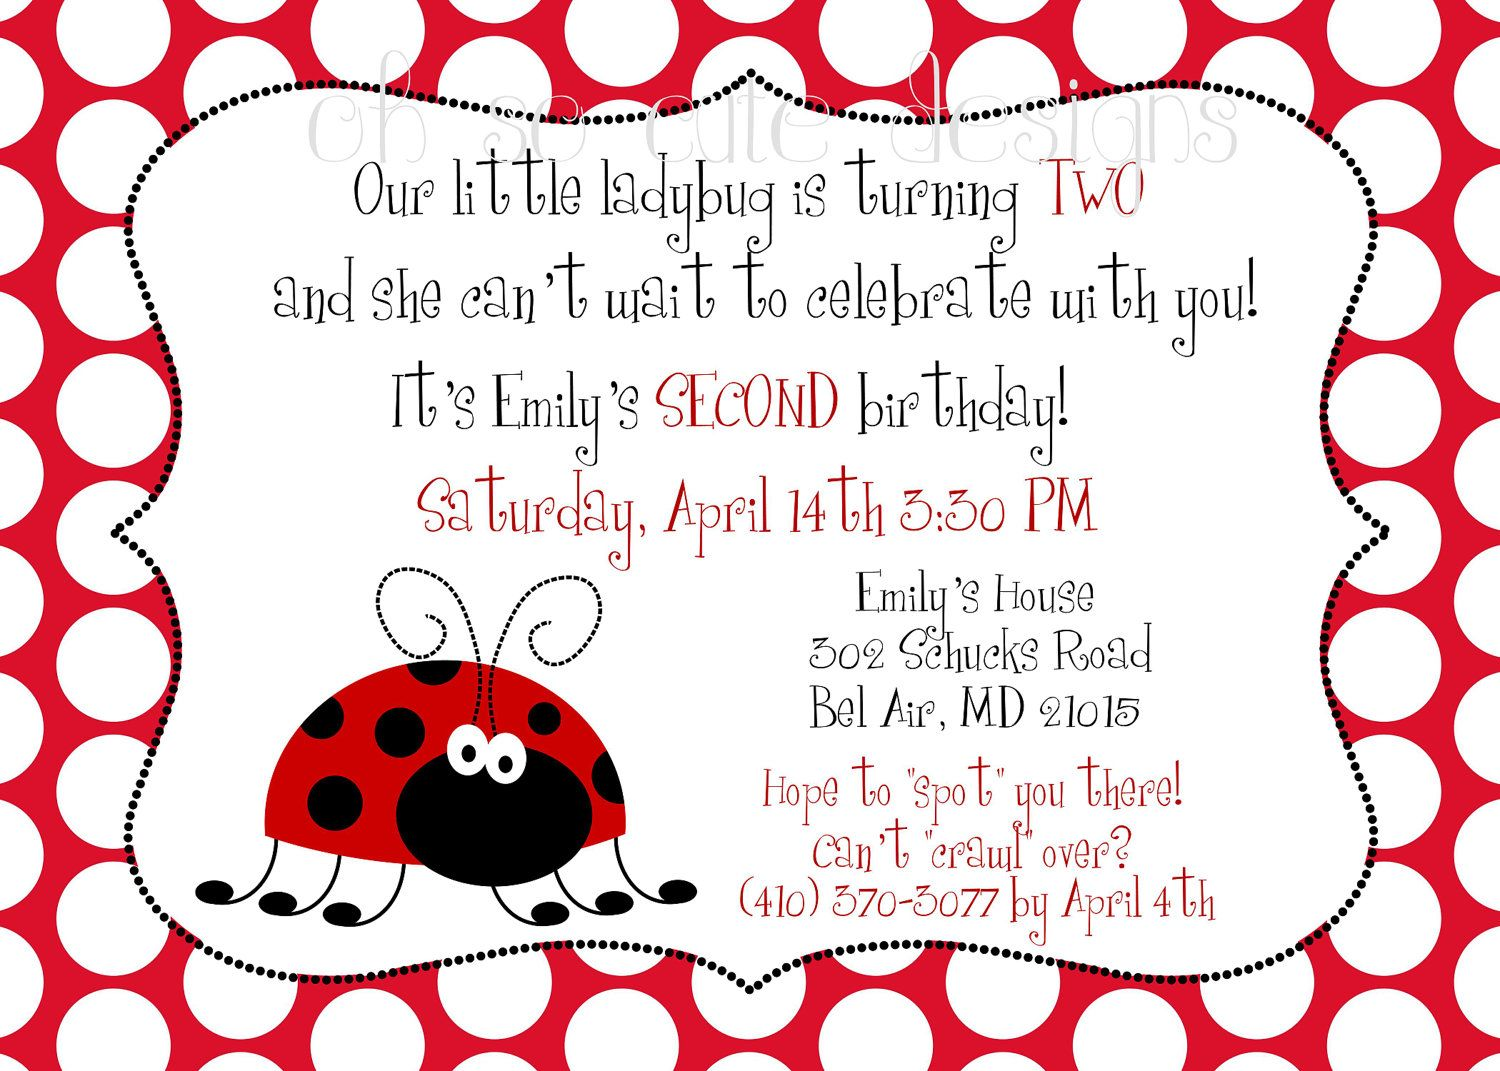 Like wording ladybug 2nd birthday invitation 1200 via etsy like wording ladybug 2nd birthday invitation 1200 via etsy stopboris Gallery